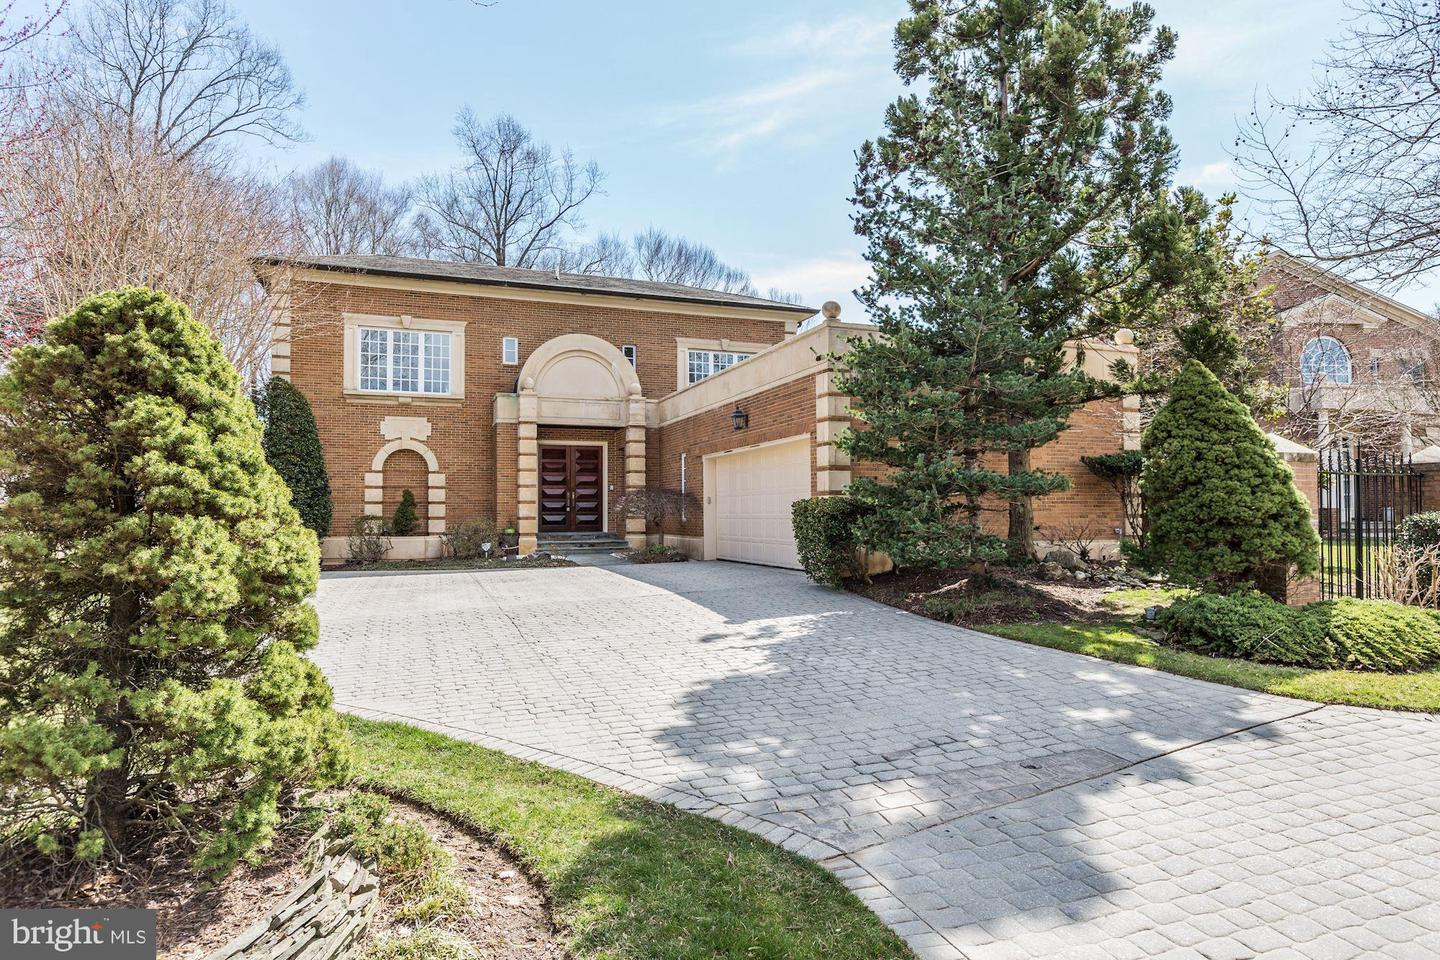 10036 CHARTWELL MANOR COURT, POTOMAC, Maryland